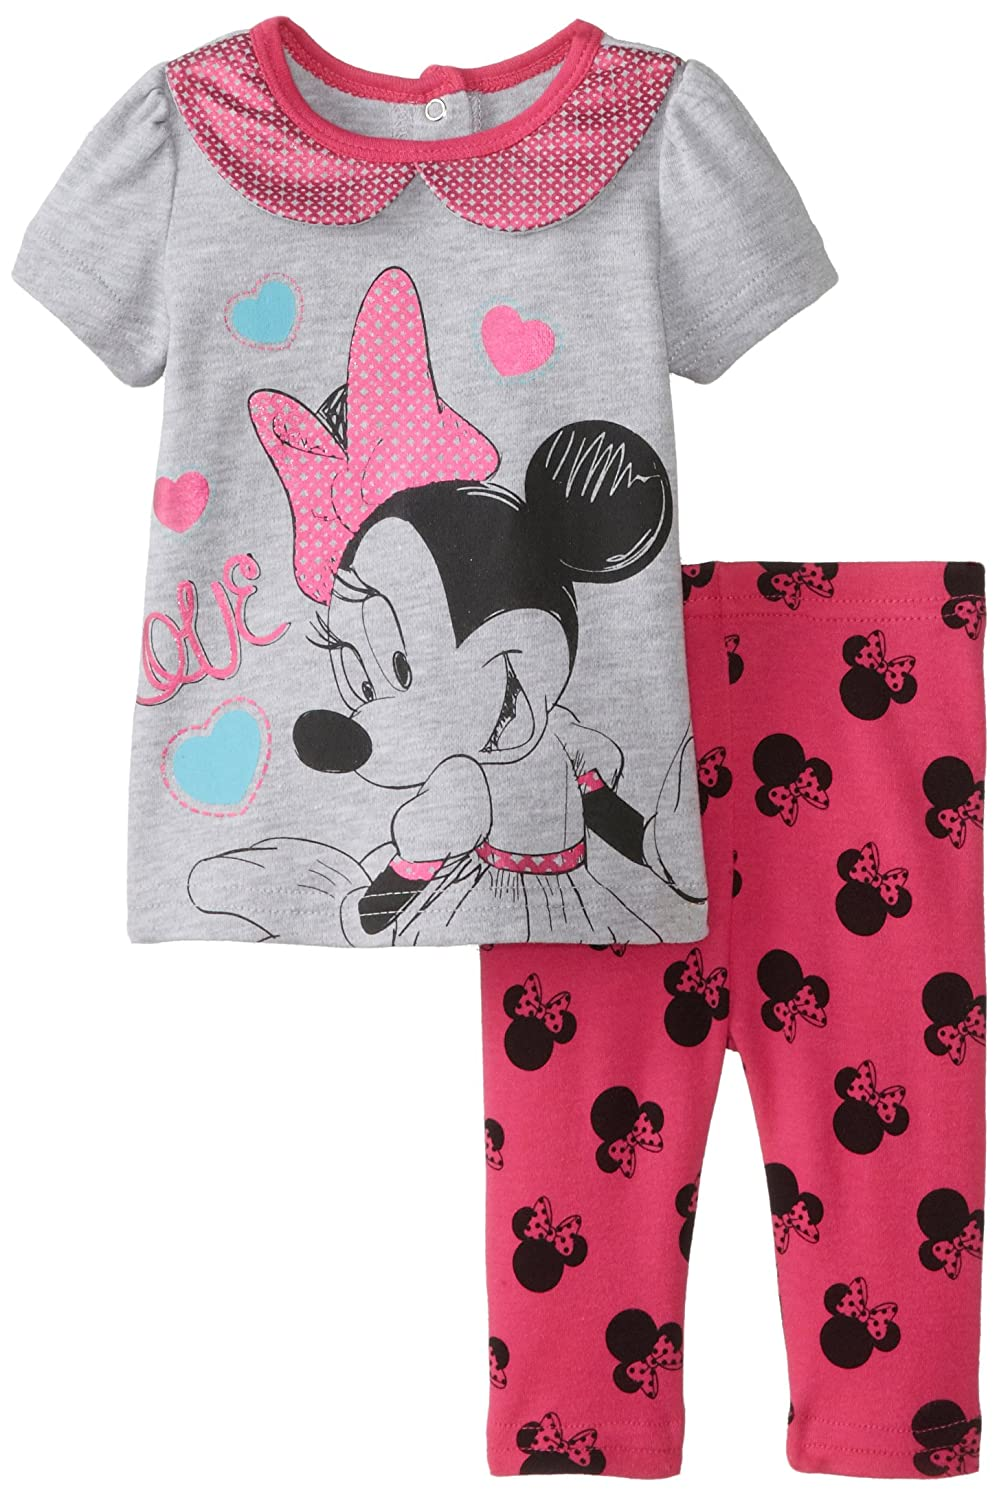 Disney Baby Baby-Girls Newborn 2 Piece Legging Set mum s era salamander silver long серебро